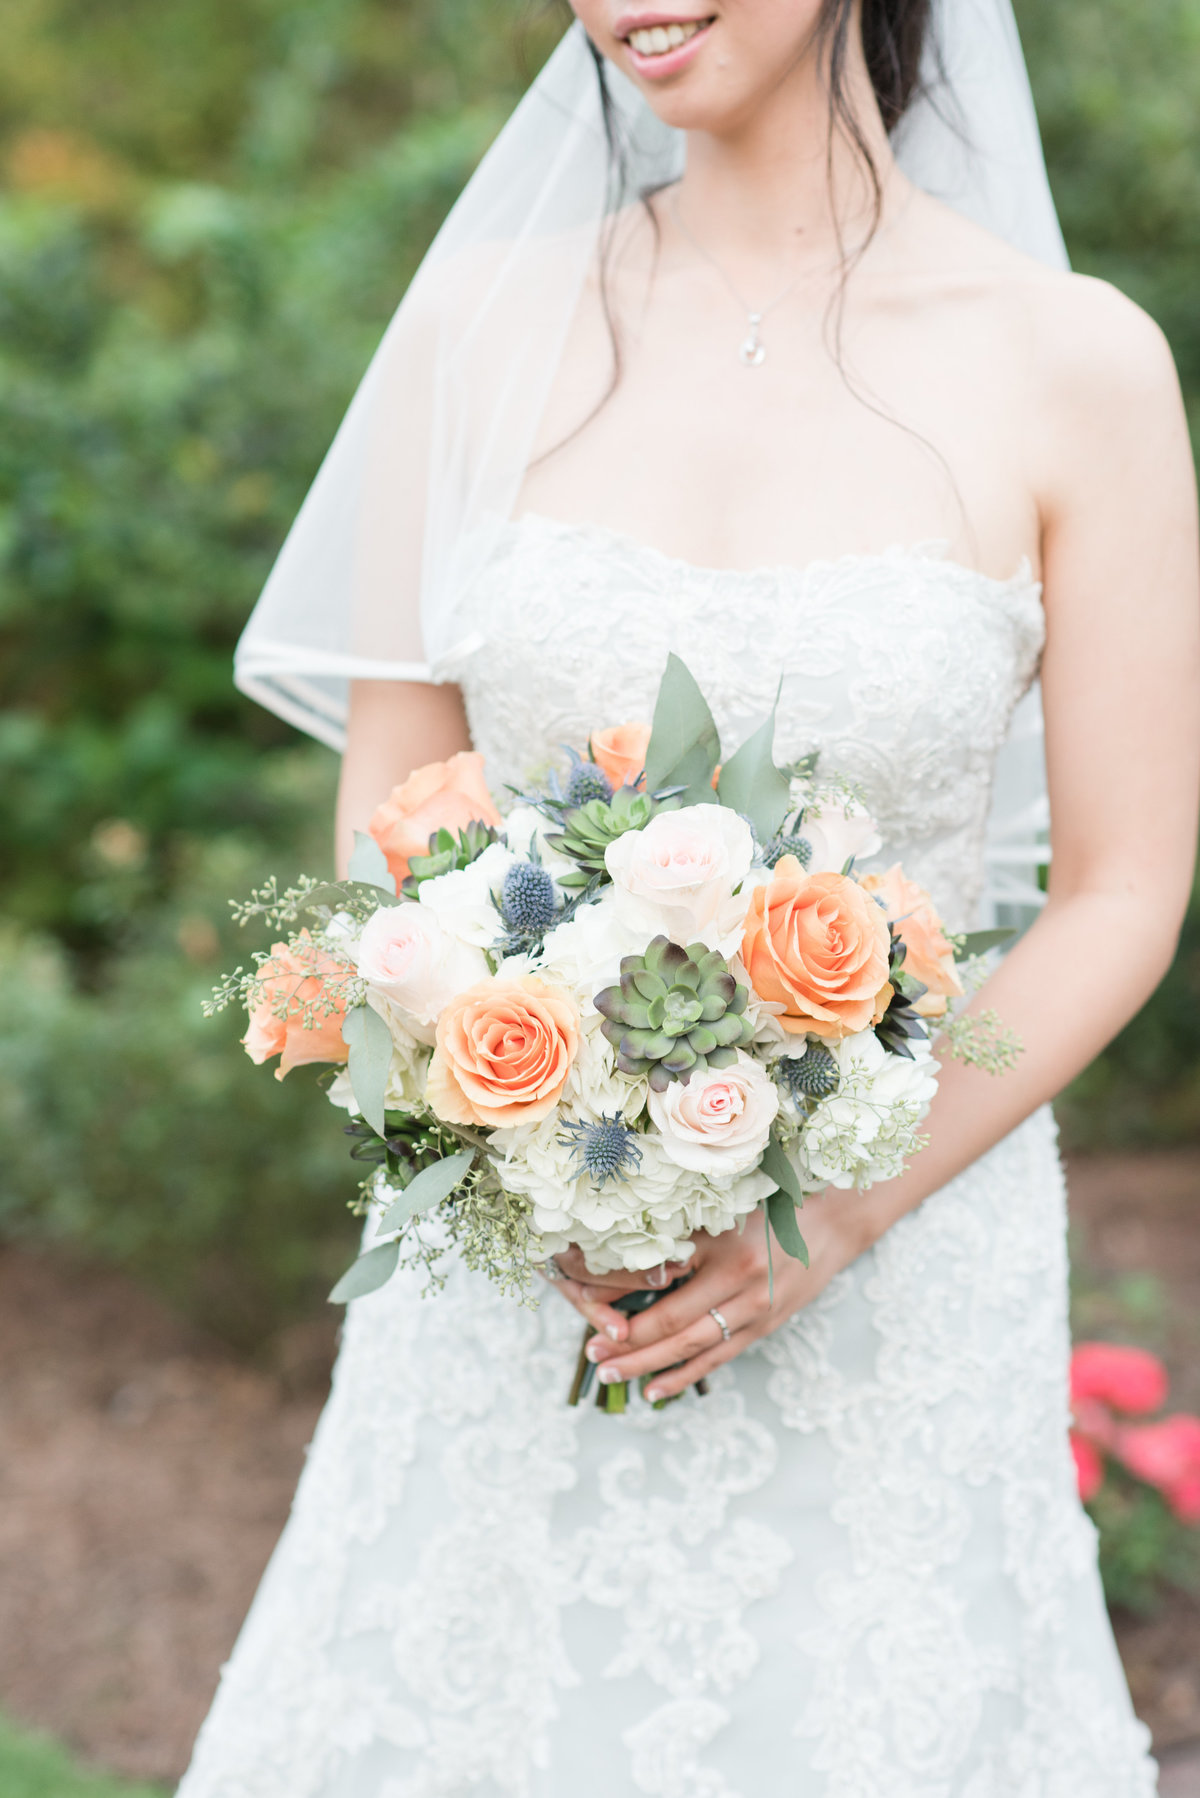 a bride wearing a strapless light blue wedding dress with mid-length veil holding white and orange wedding bouquet in front of an elegant little garden with the focus on the wedding bouquet  at Barclay Villa